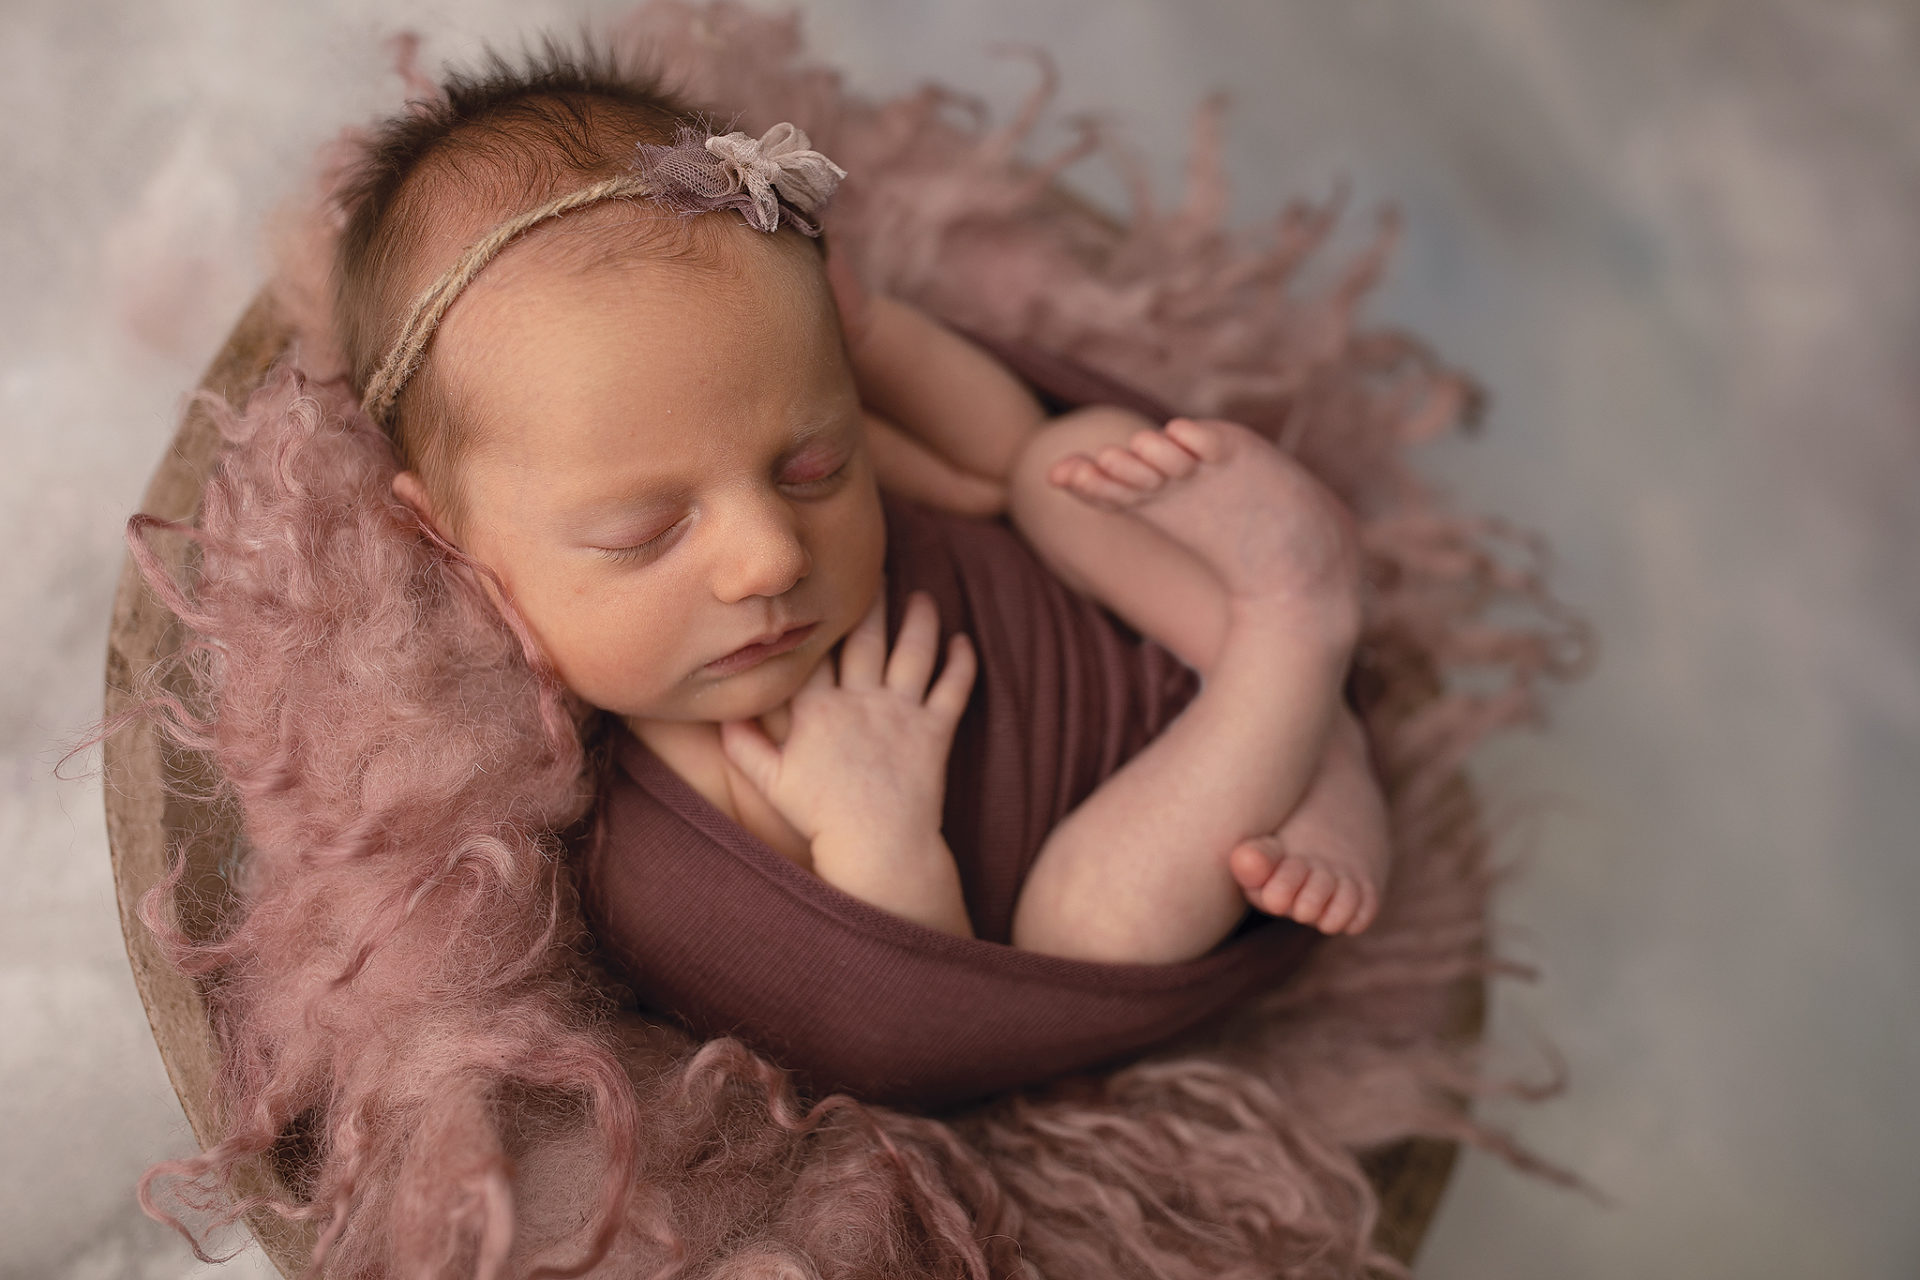 Tucson and Oro Valley Newborn Baby Pictures | Tucson and Oro Valley Newborn Baby Photography studio